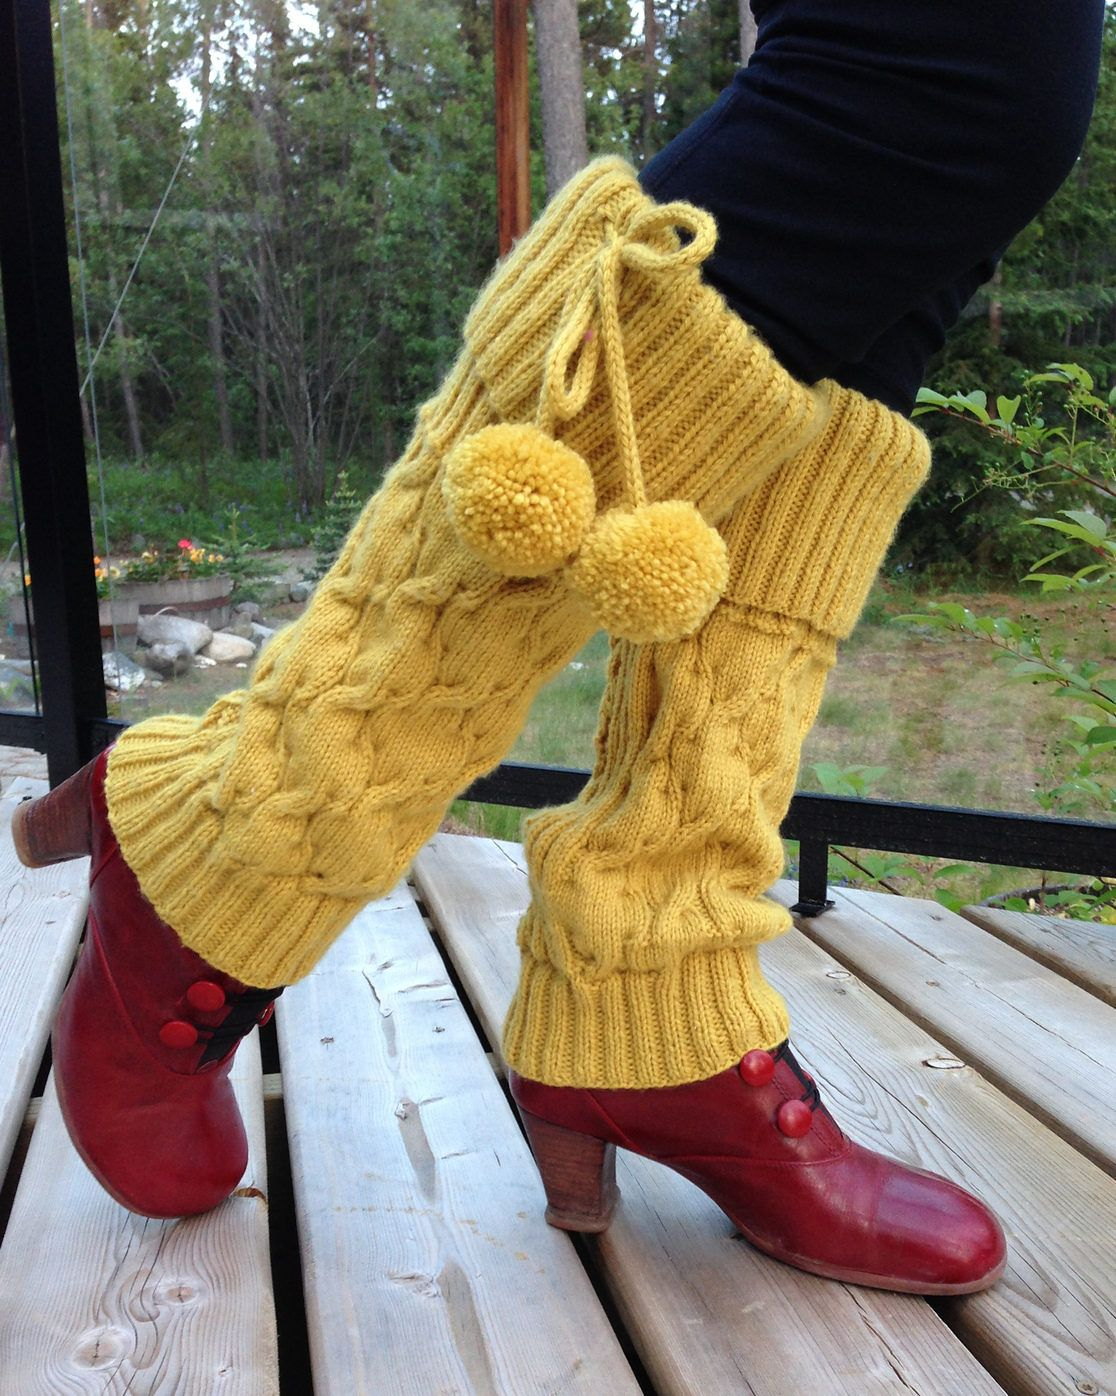 Legwarmer Knitting Patterns | Leg warmers, Knit patterns and Cable